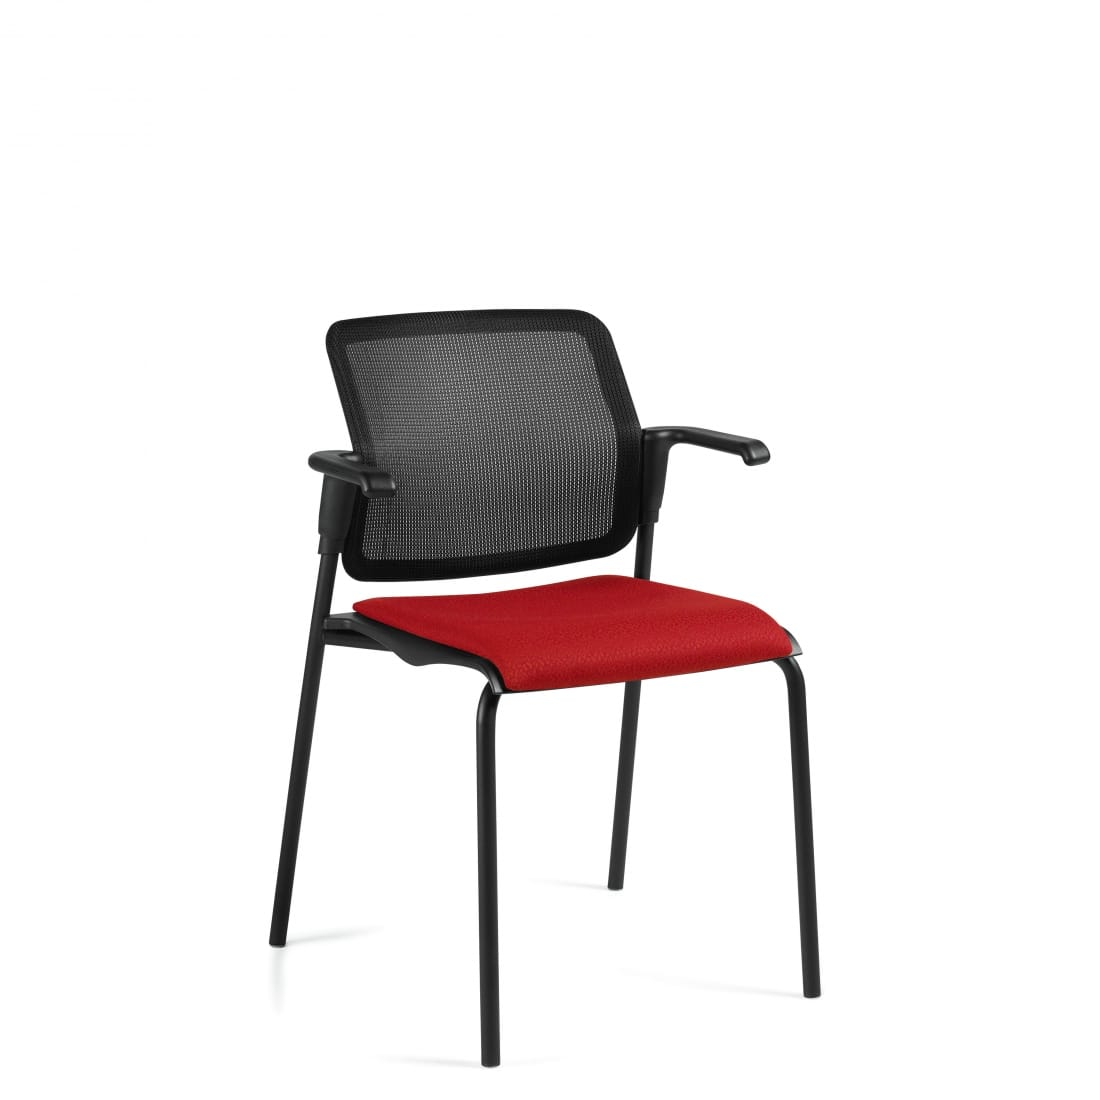 Stacking Armchair, Red Upholstered Seat & Black Mesh Back With Black Frame (6514MB)